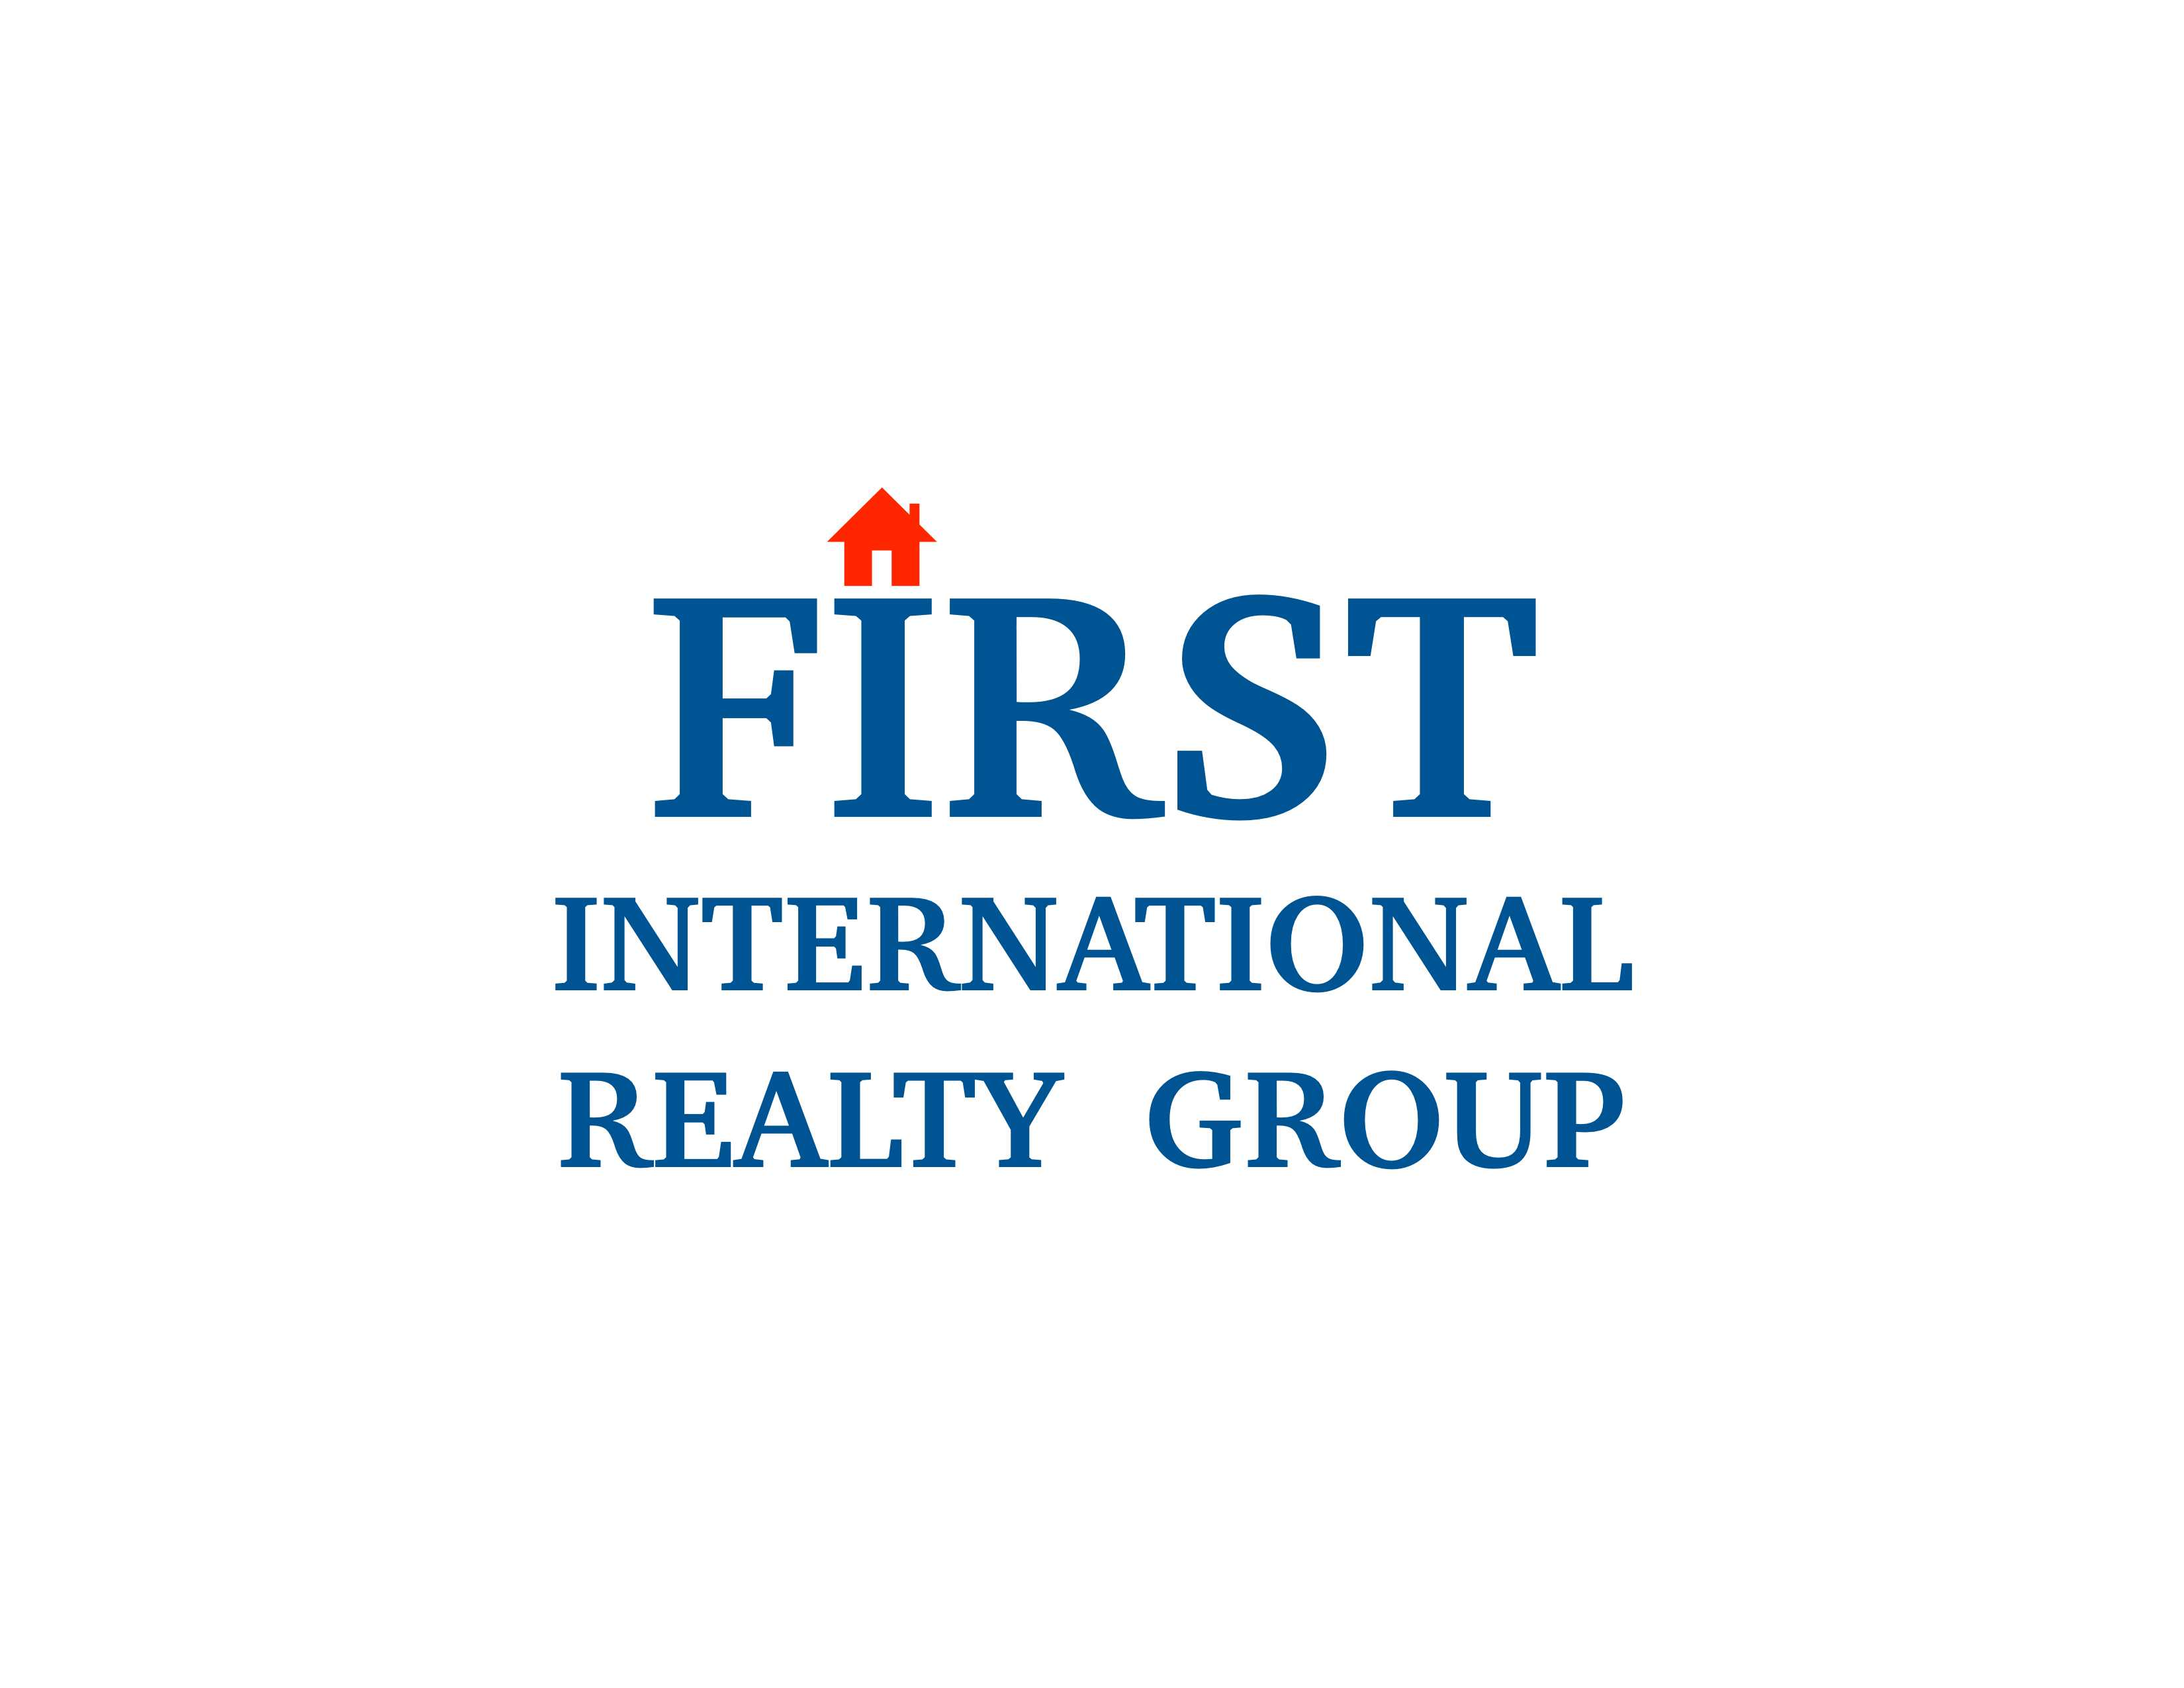 First International Realty Group Logo